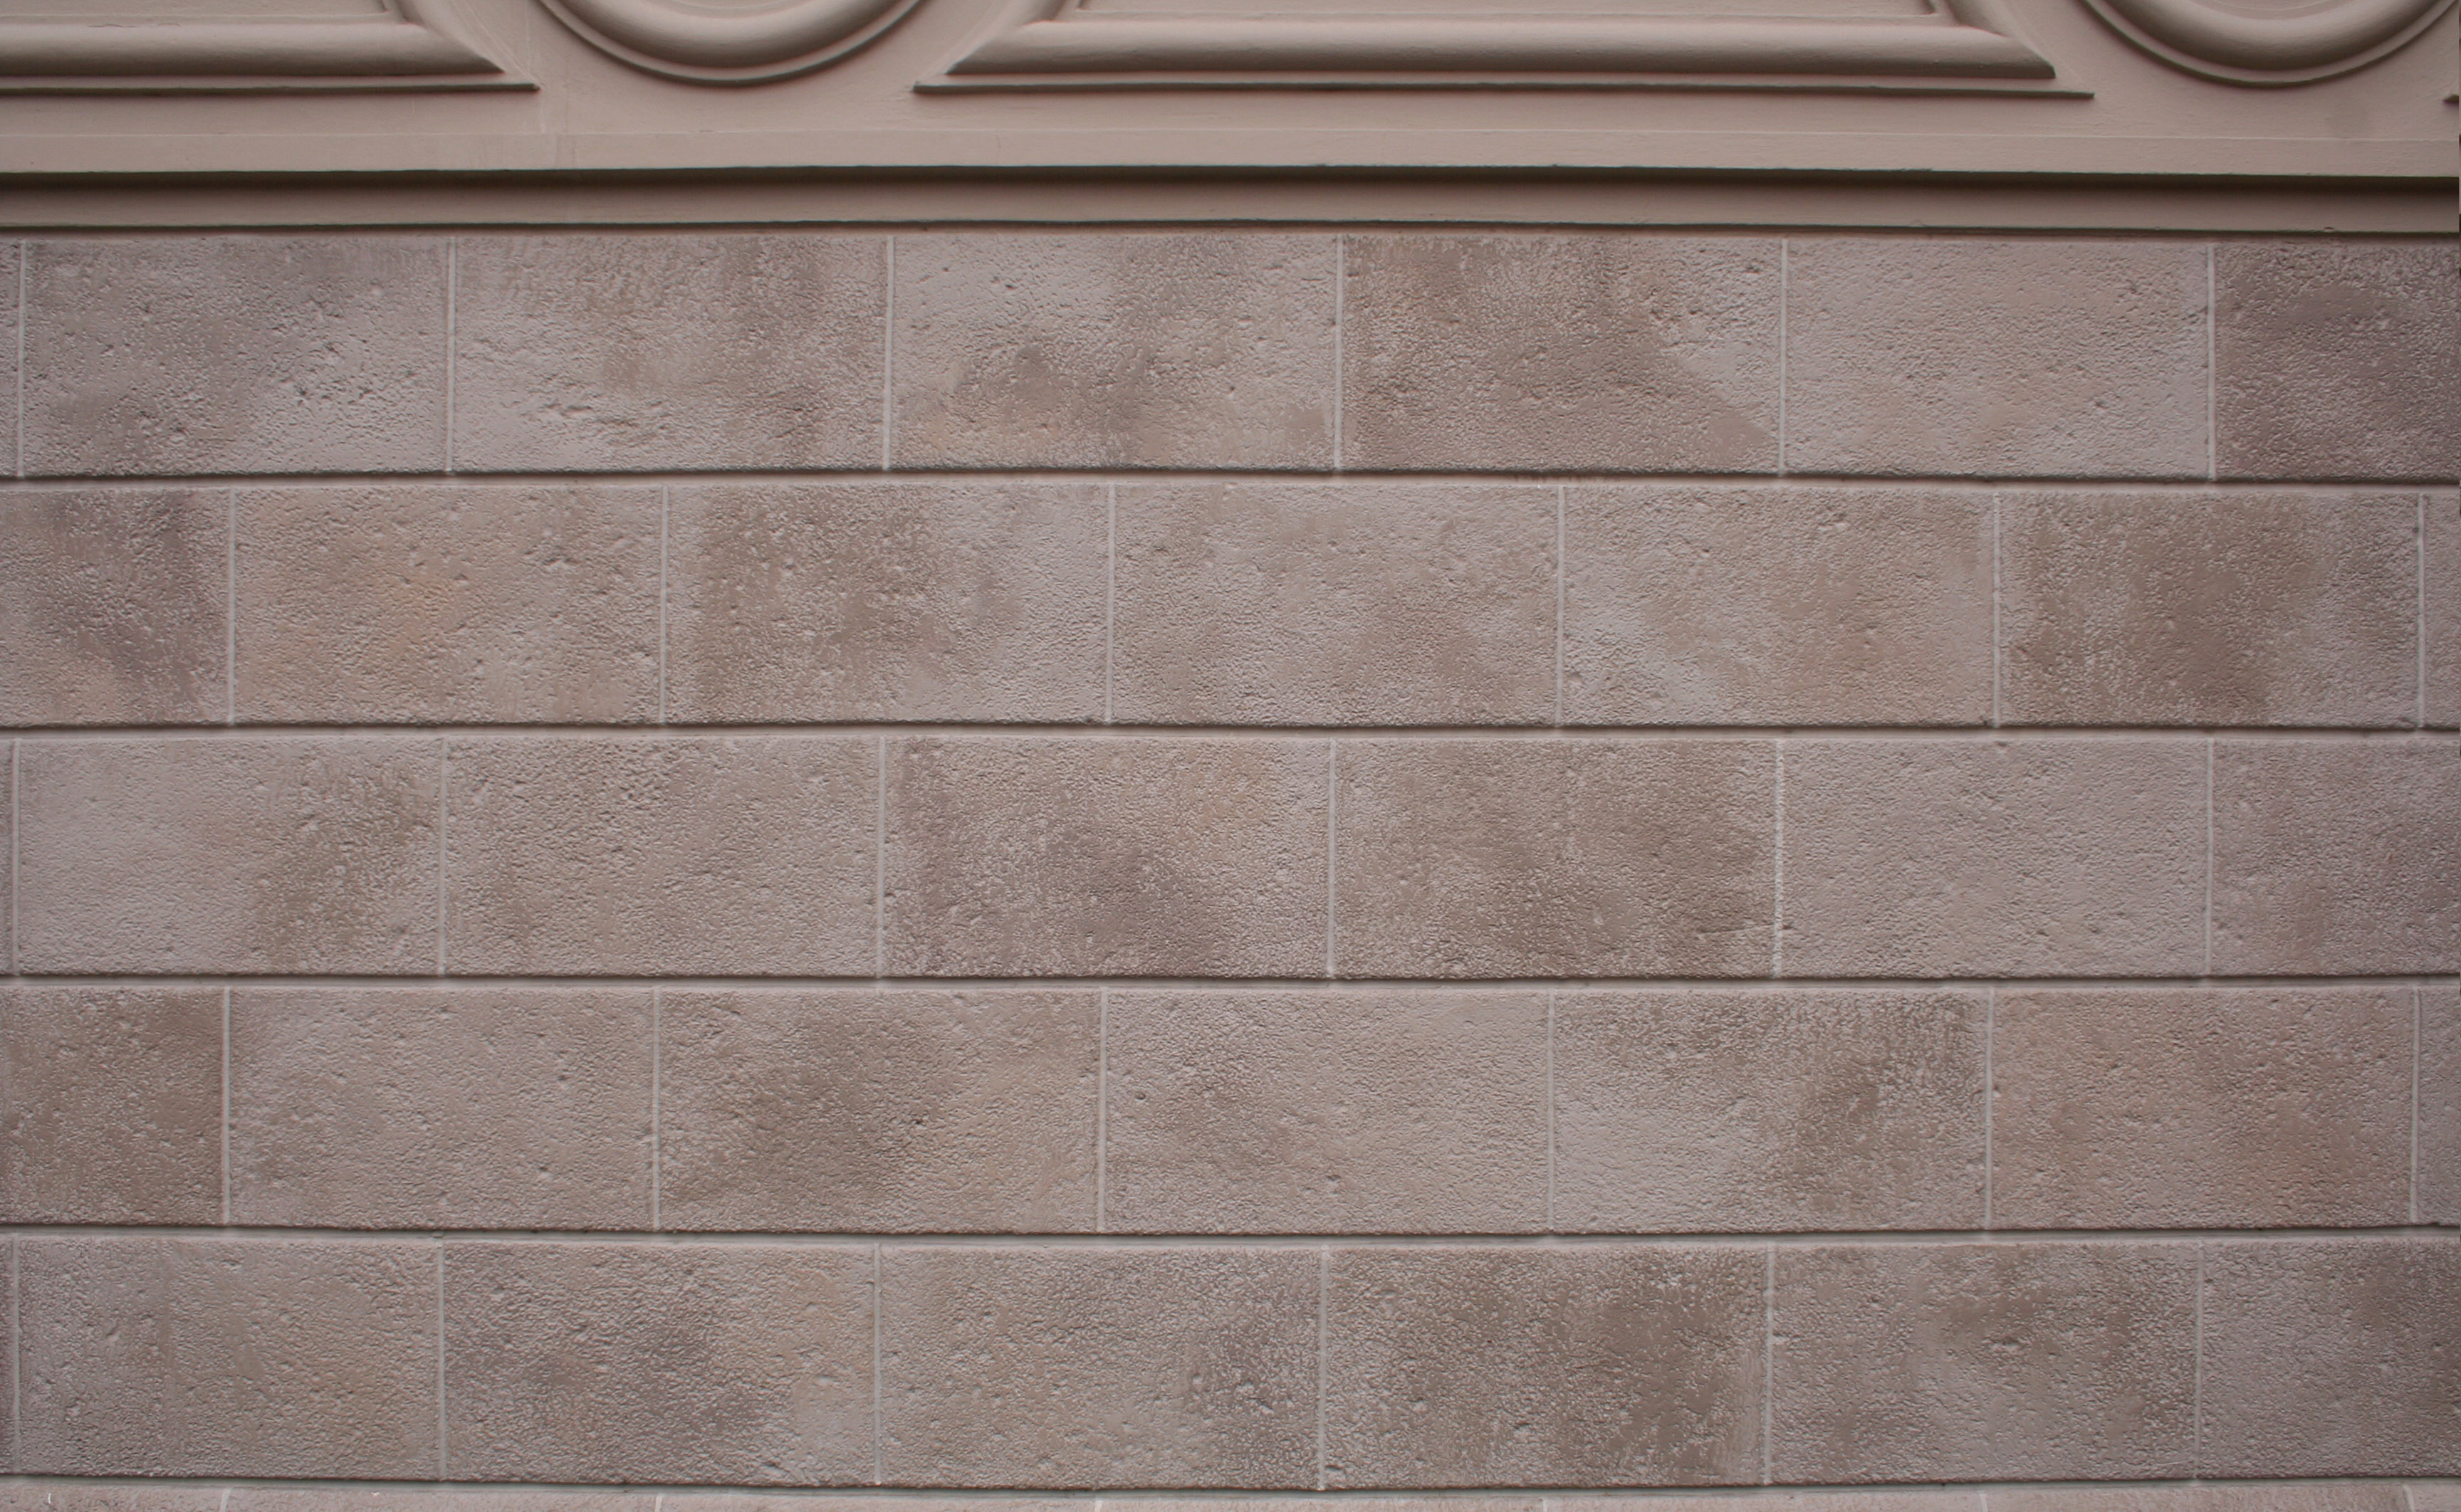 Texturex Clean Light Brick Wall Trim Tan Texture